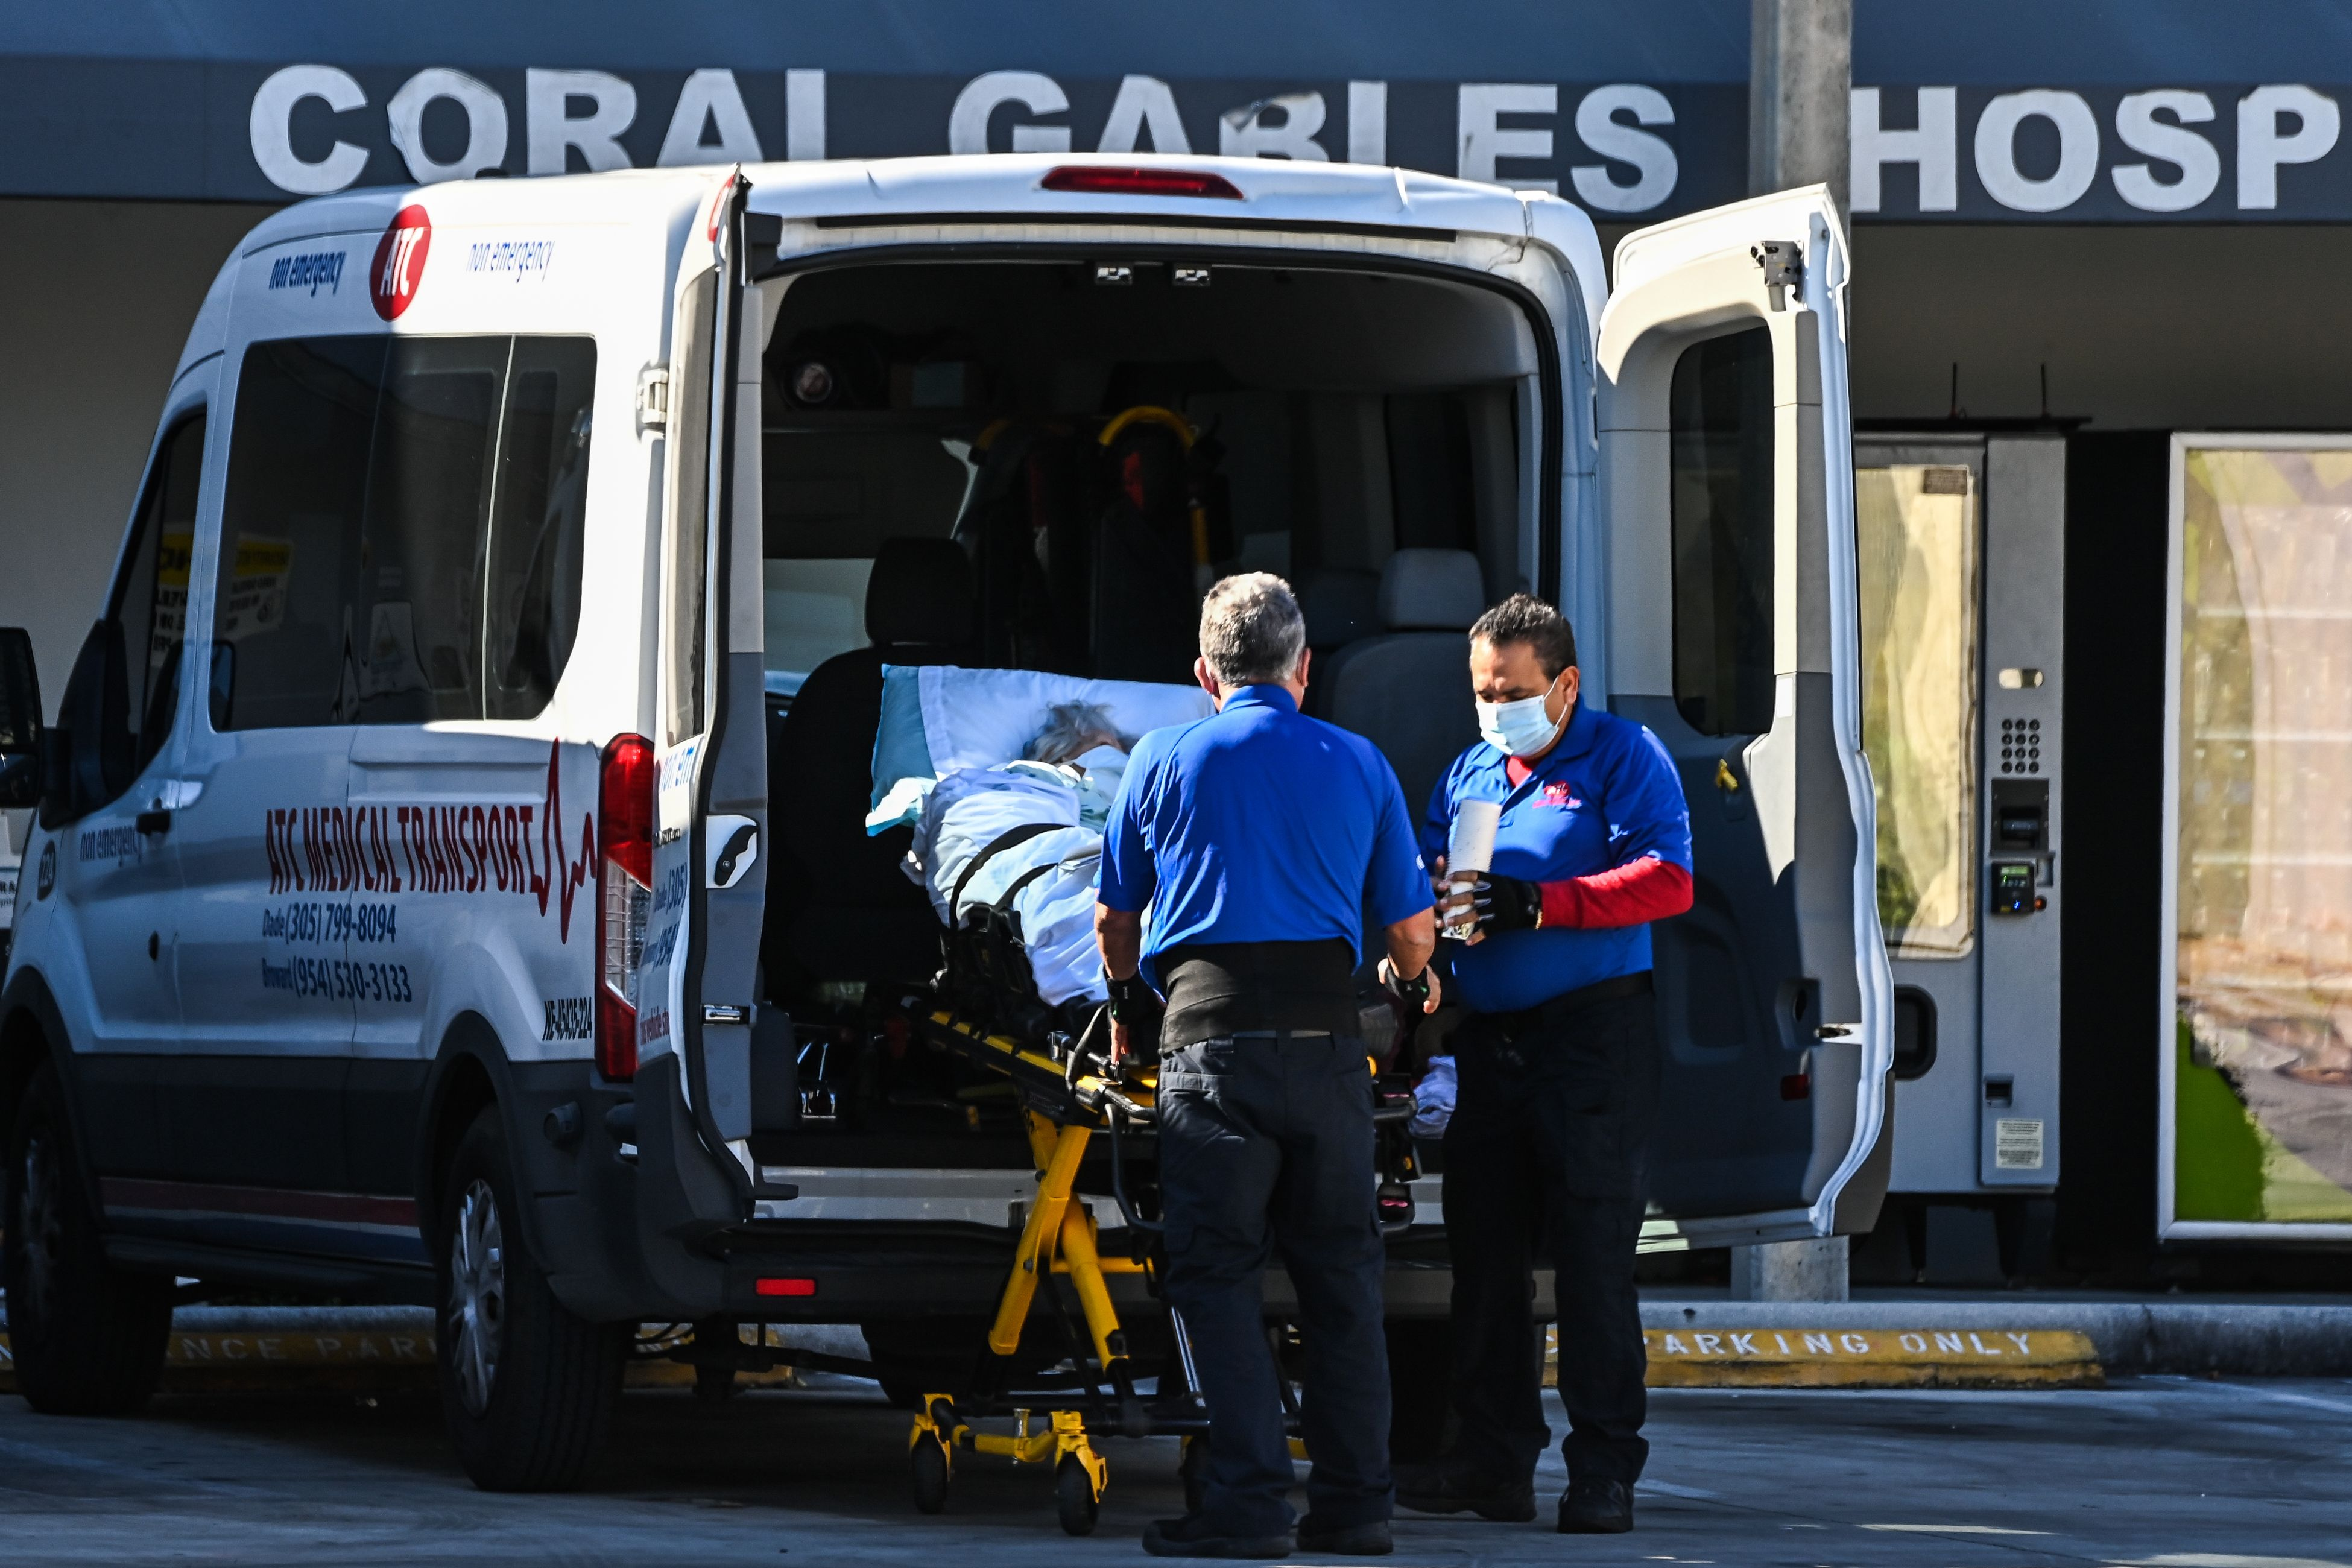 Medics transfer a patient at Coral Gables Hospital where coronavirus patients are treated in Miami, Florida, on December 10.